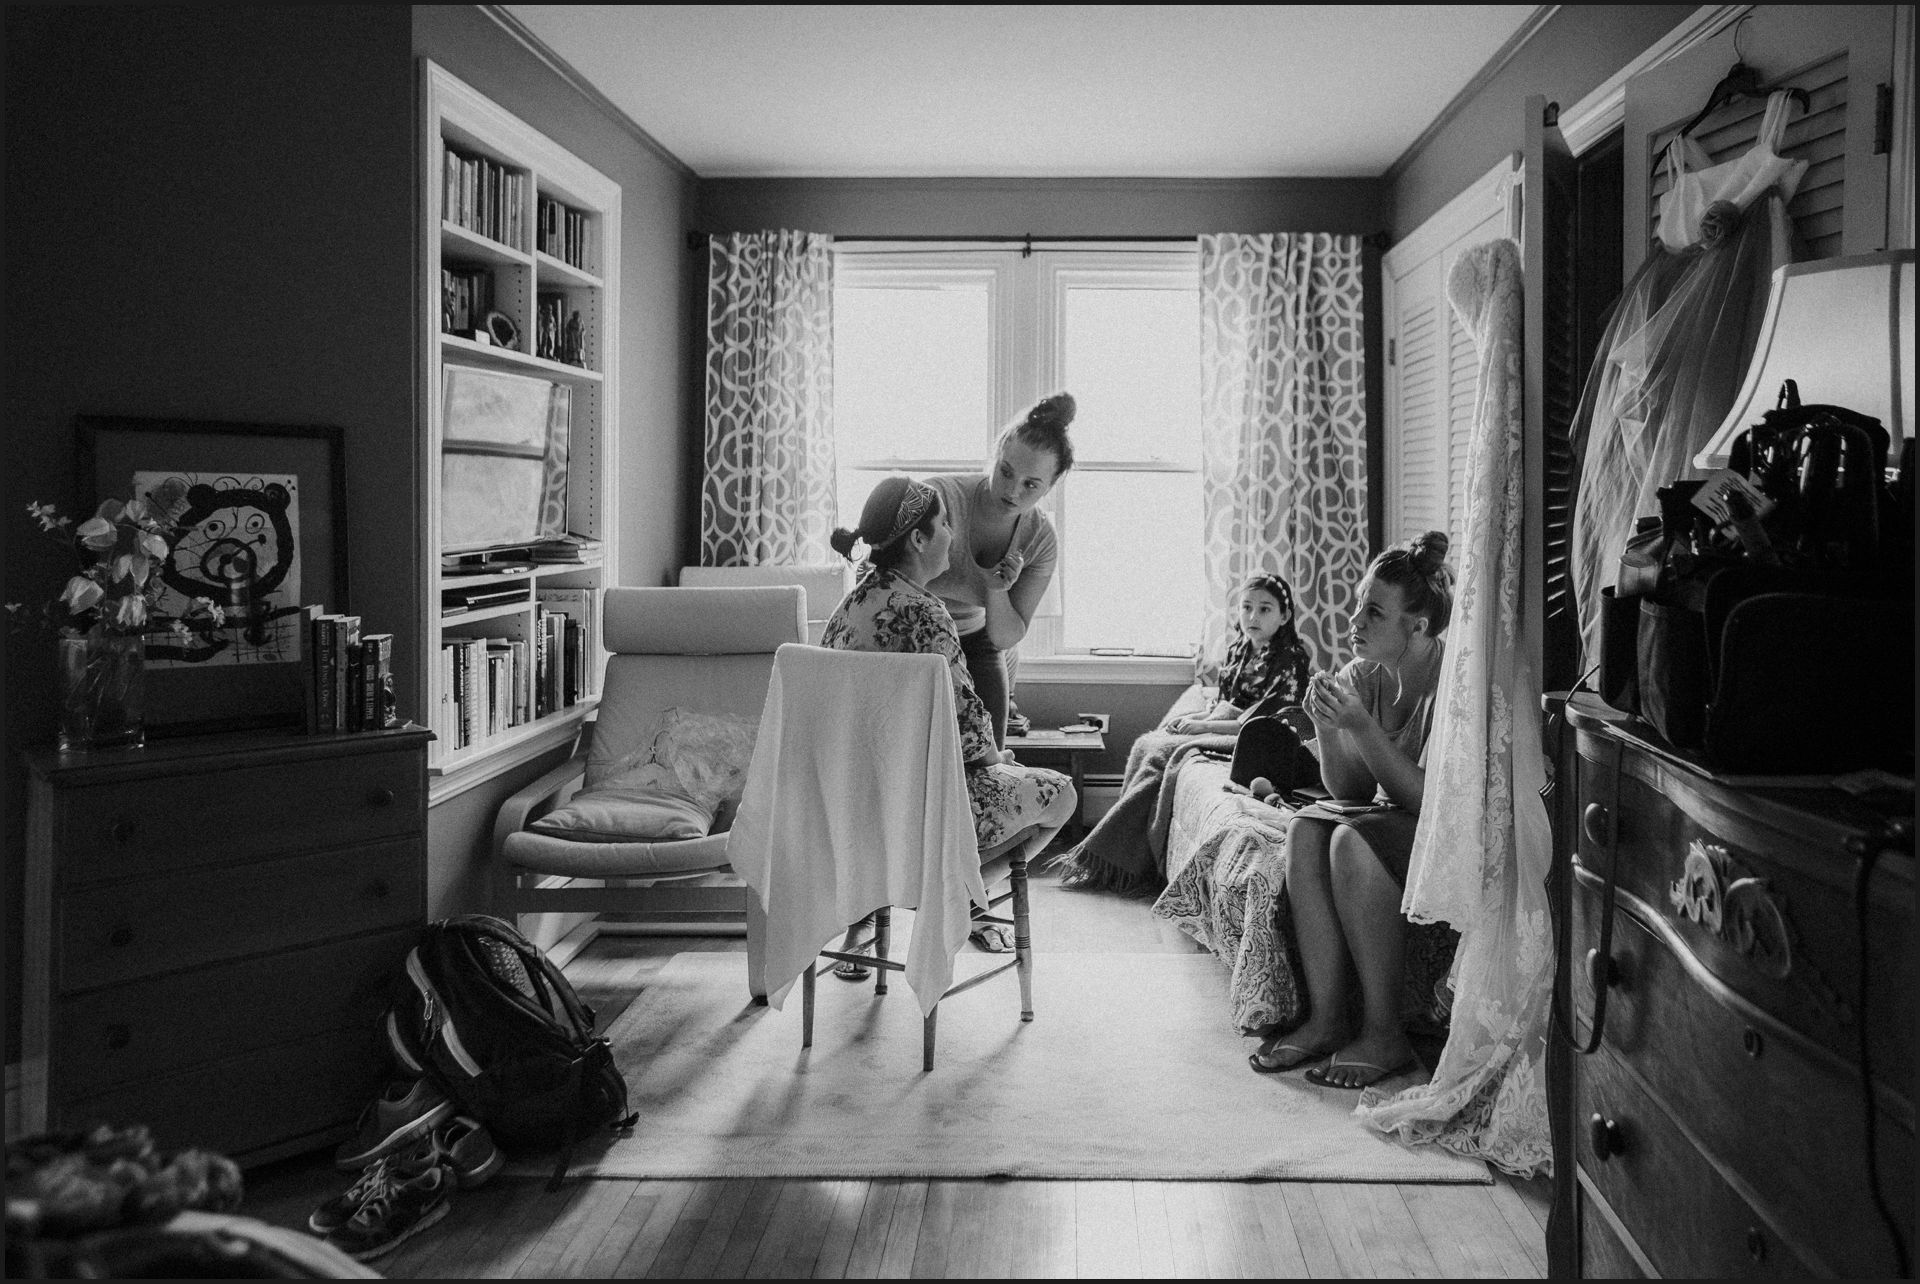 bride preparation, black and white, getting ready, window